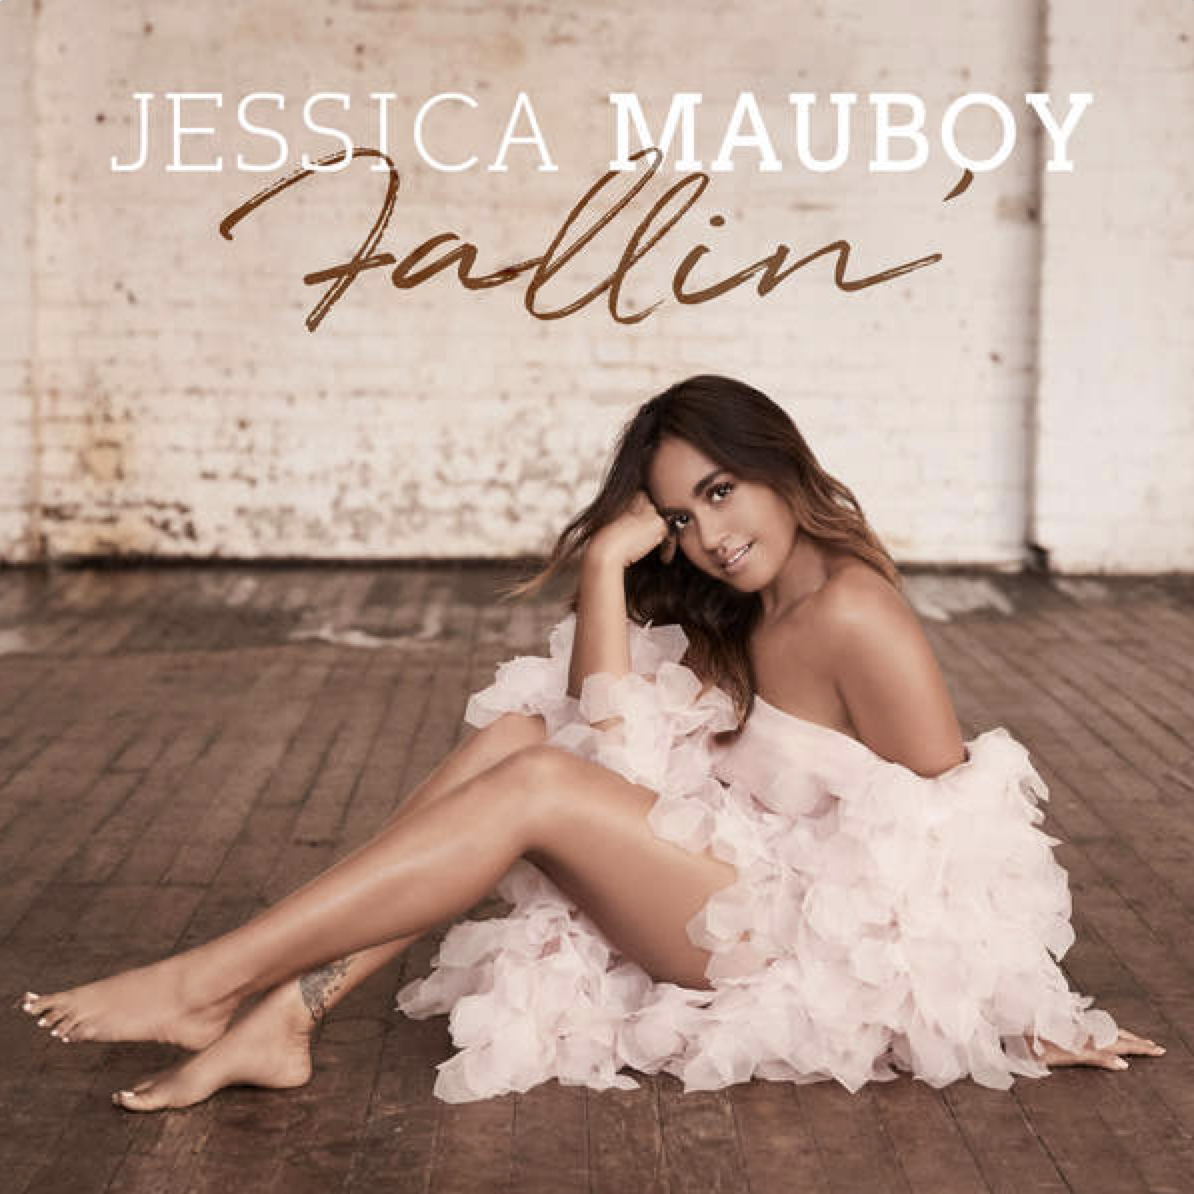 Fallin' - Jessica Mauboy - ADDITIONAL PRODUCTION, STRING ARRANGEMENTTop 20 ARIA Singles Chart#1 Australian iTunesFeatured on the Channel 7 (AUS) show